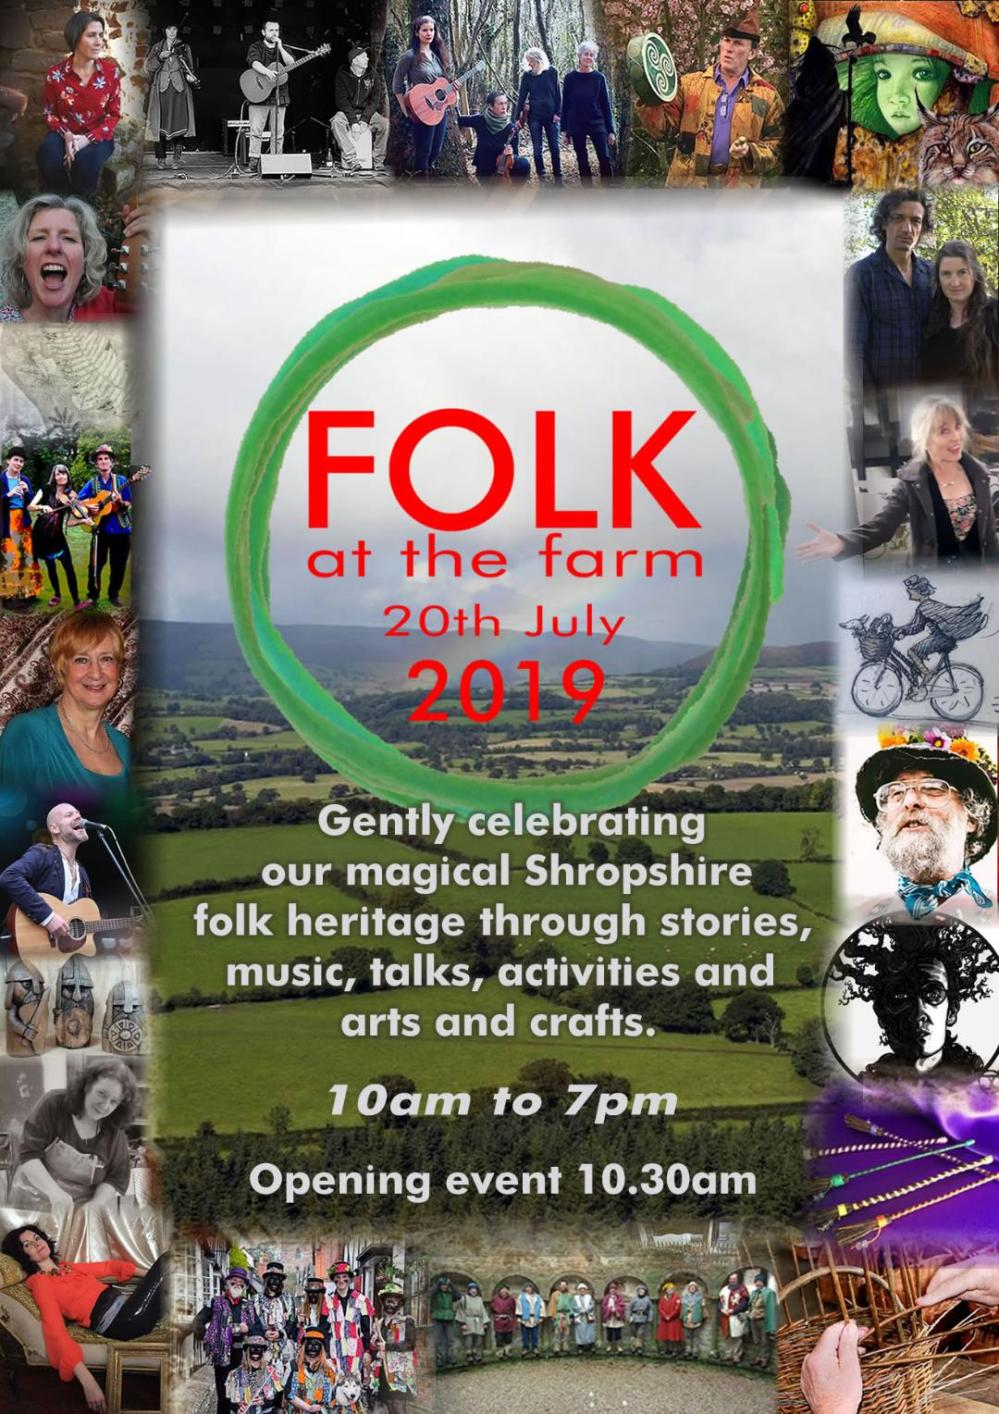 FOLK at the farm festival - celebrating Shropshire Folklore